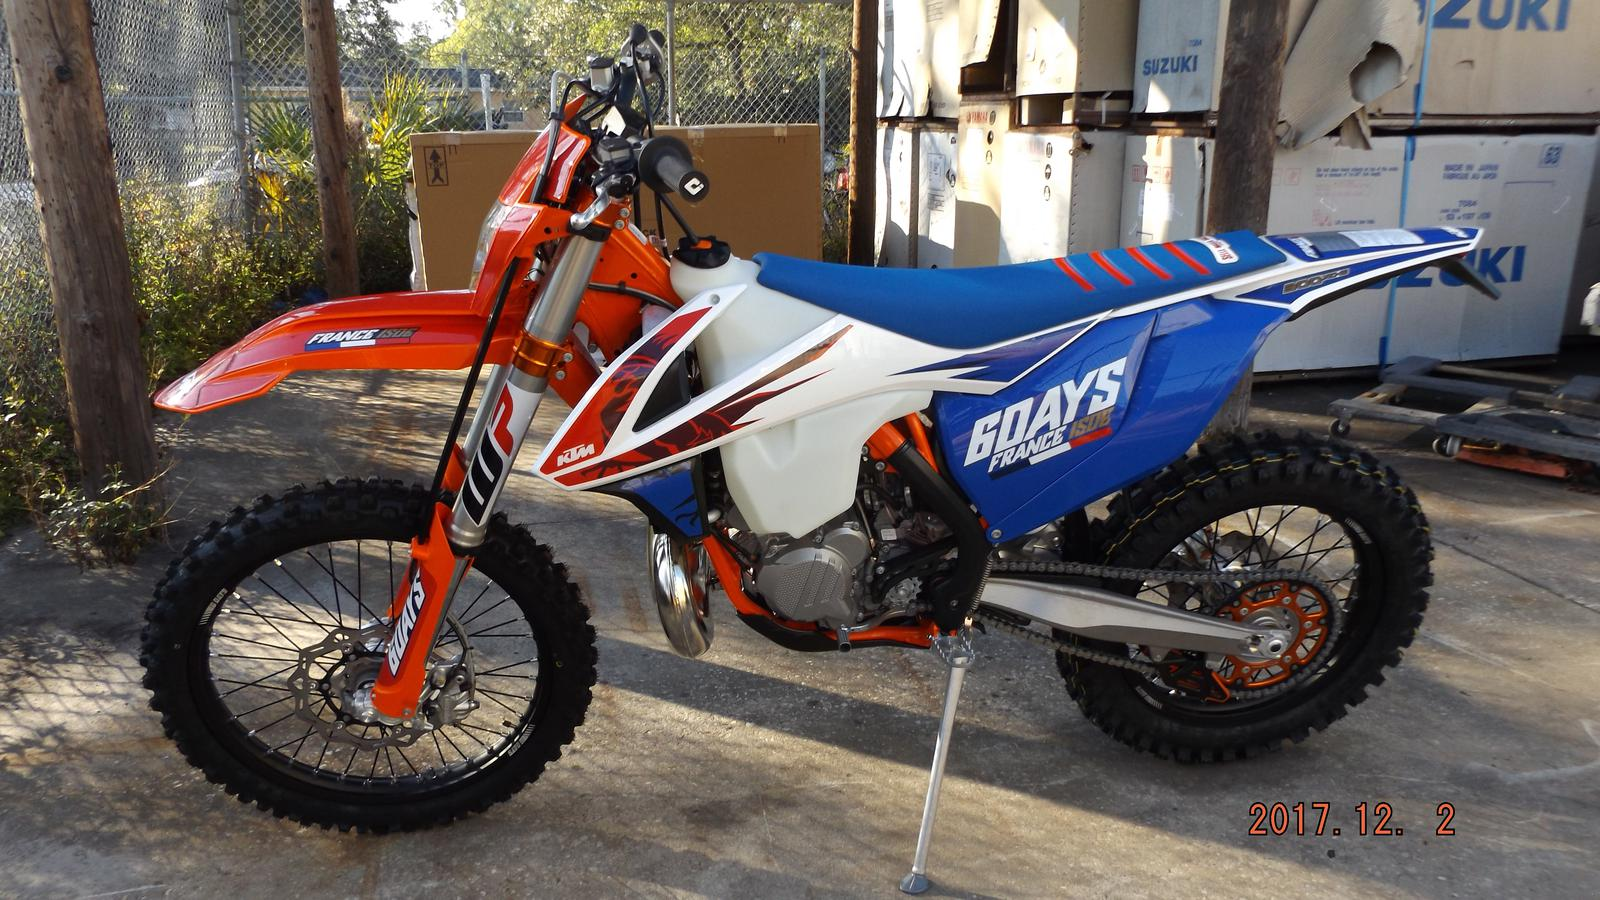 2018 Ktm 300 Xc W Six Days For In Usville Fl Eport Cycles 321 269 5941